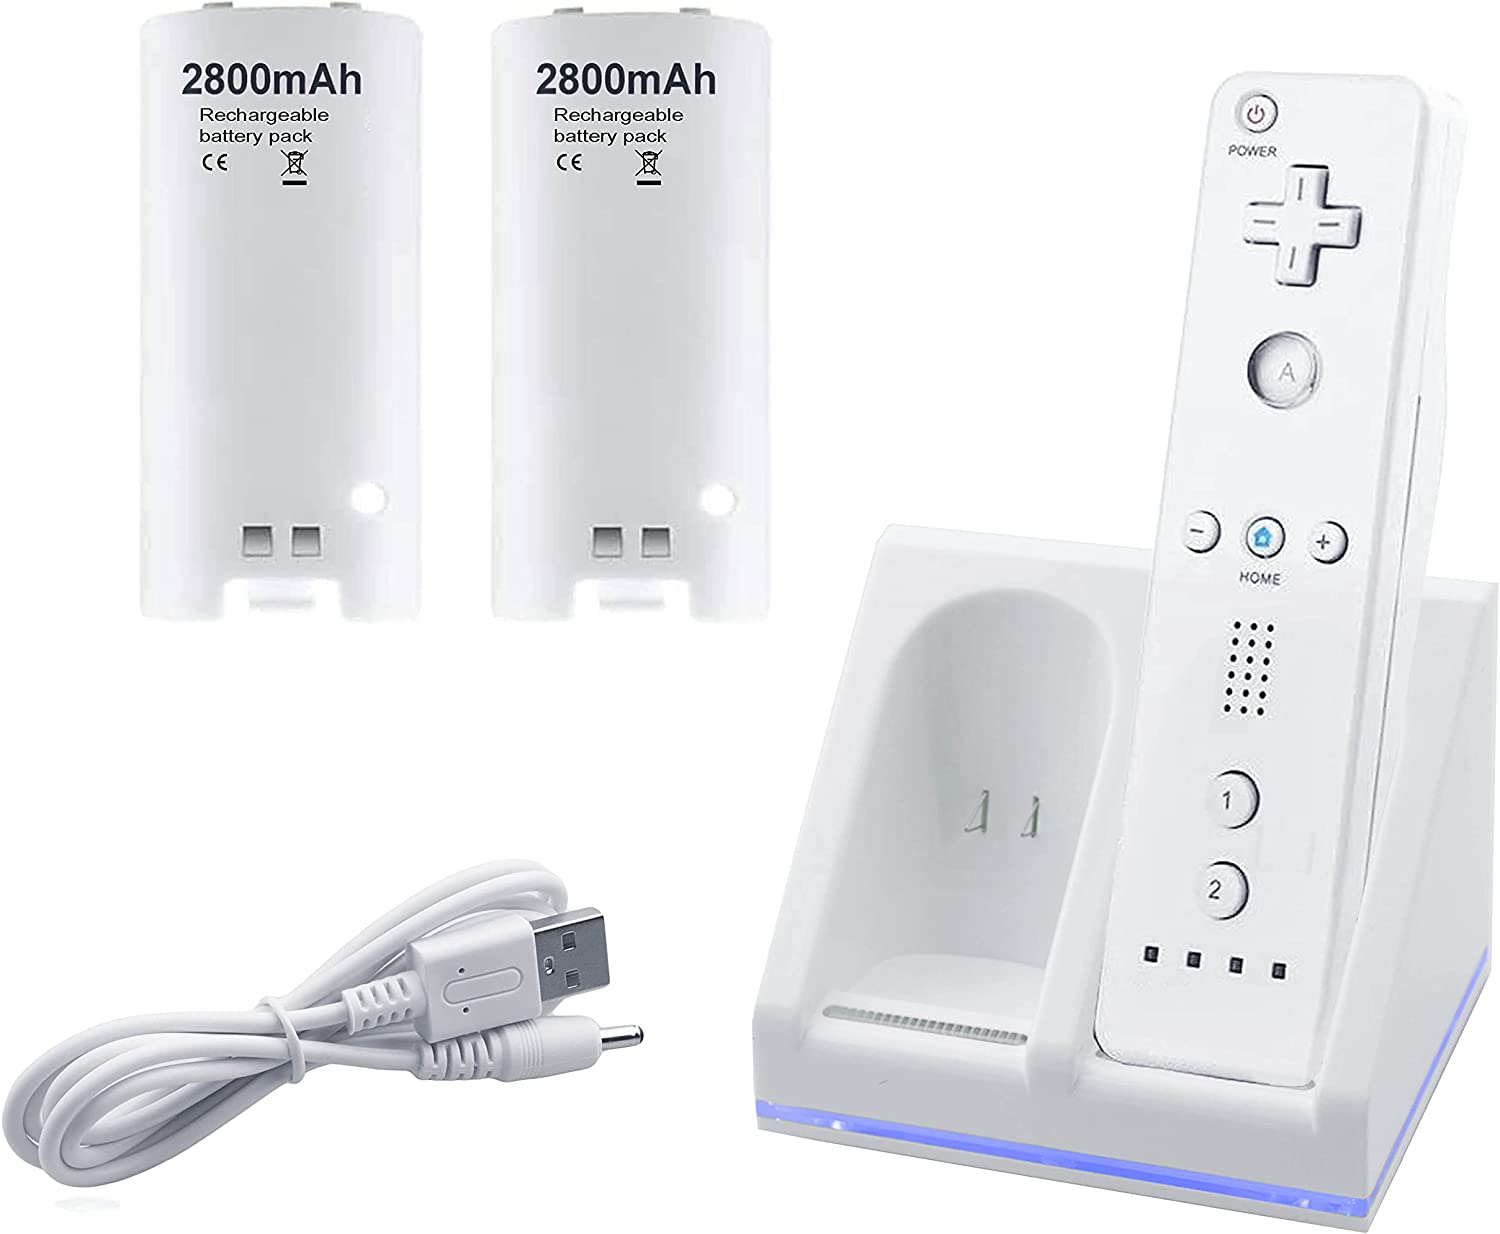 Wii Remote Charger, 2 in 1 Charging Station Charger Dock with 2 Pack 2800mAh Rechargeable Battery Fit for Wii/Wii U Remote Controller: Electronics